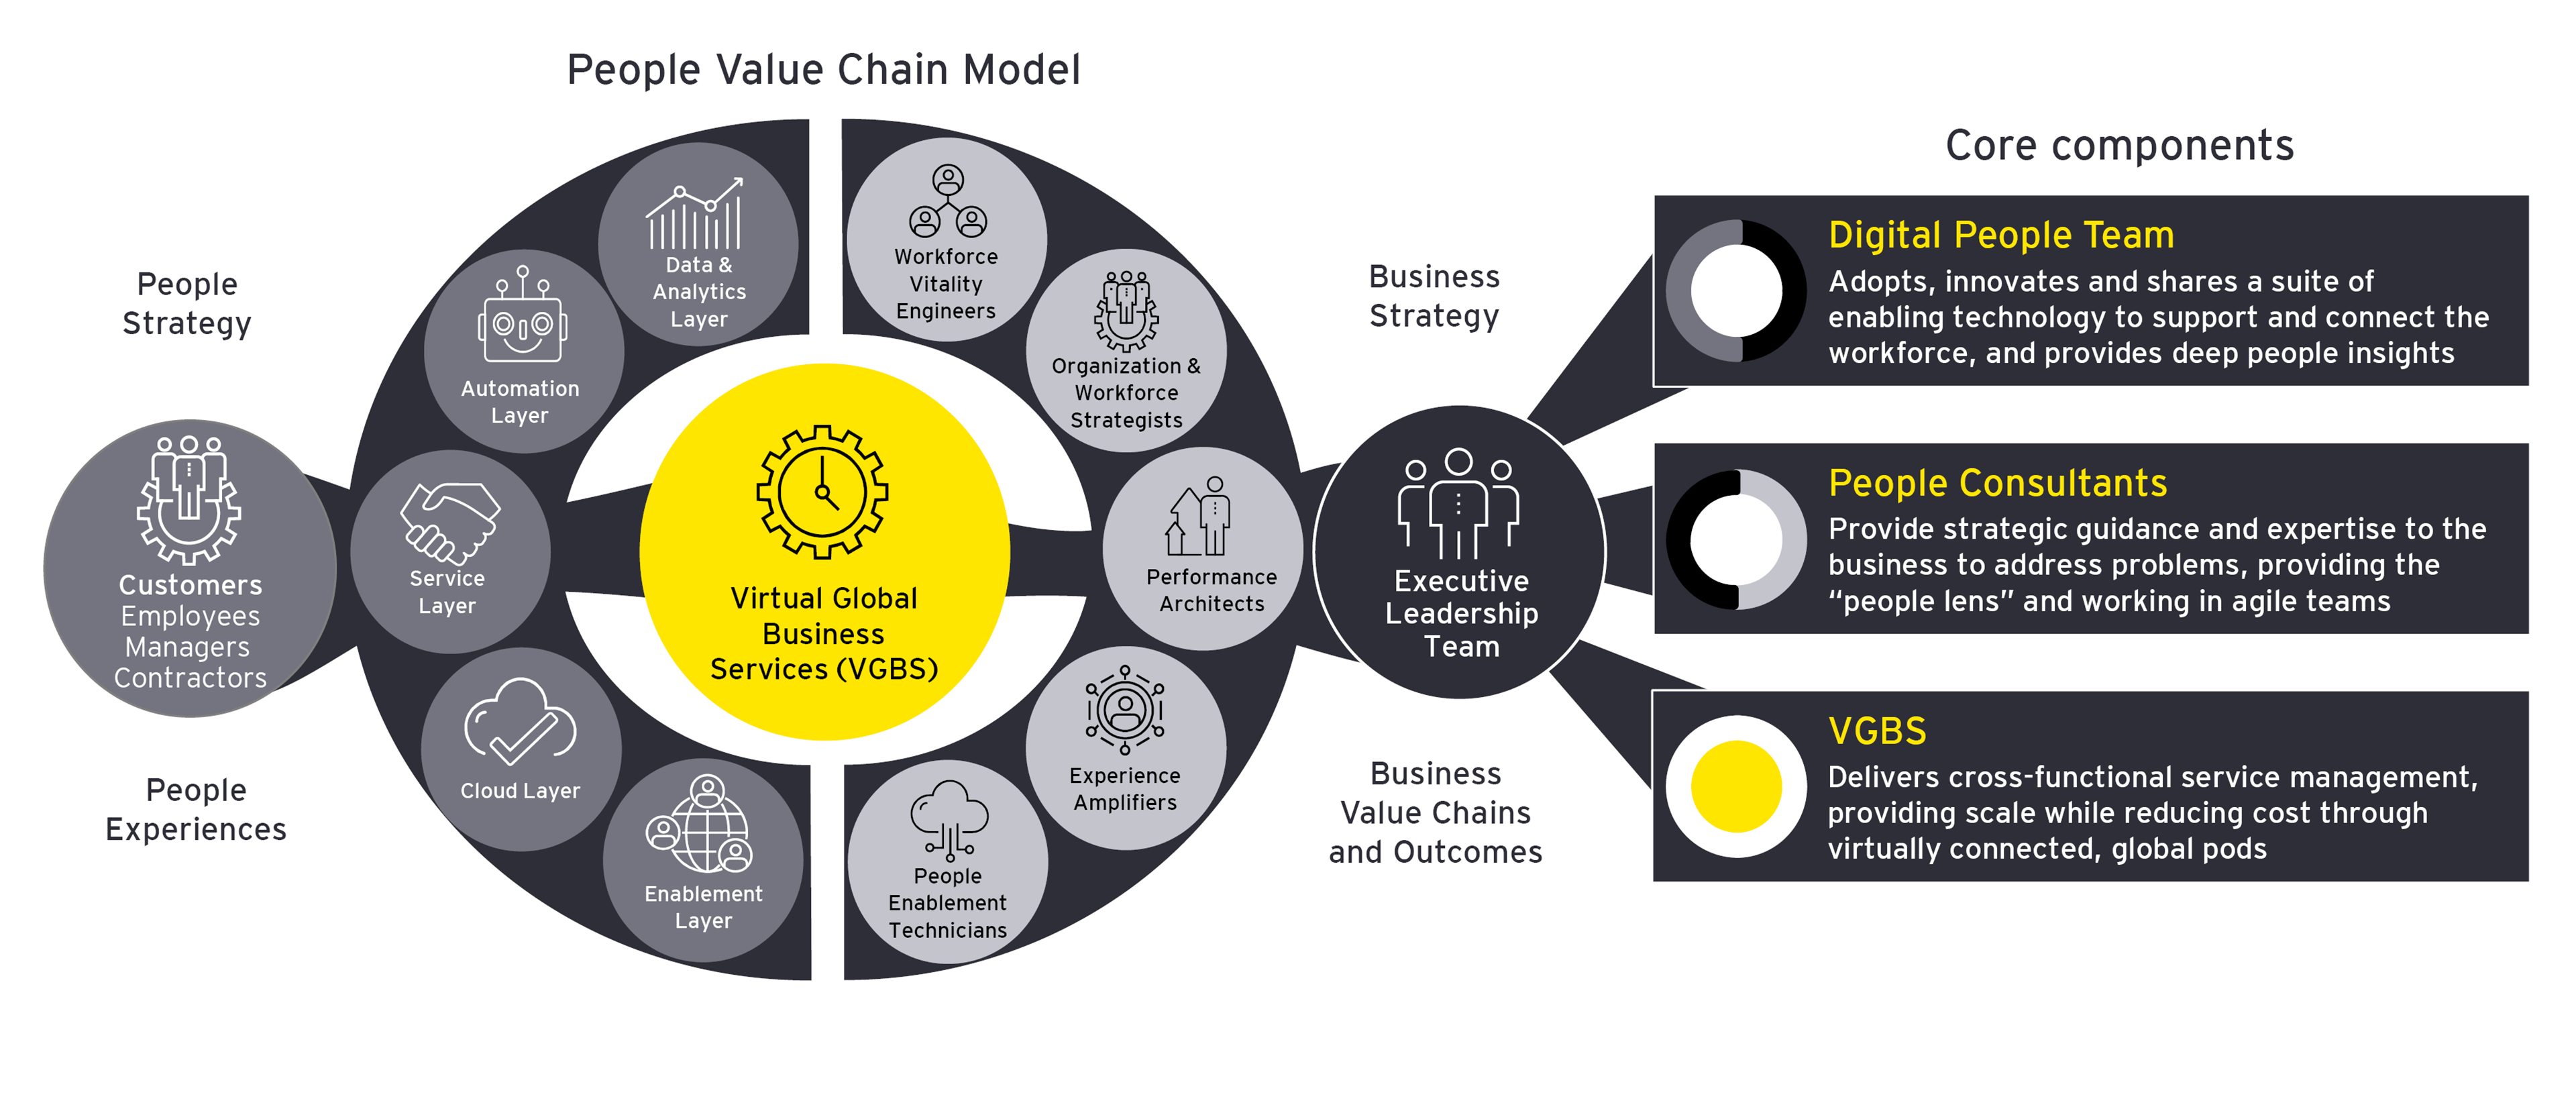 The people value chain graphic